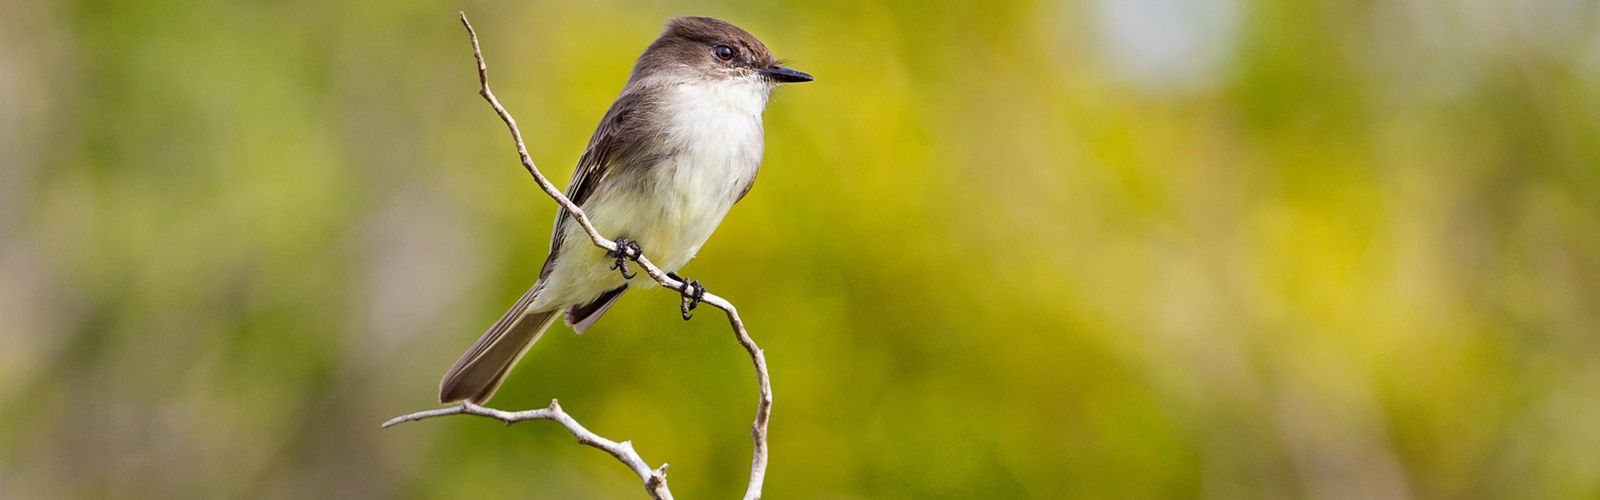 A songbird perched on a branch against a blurred green background